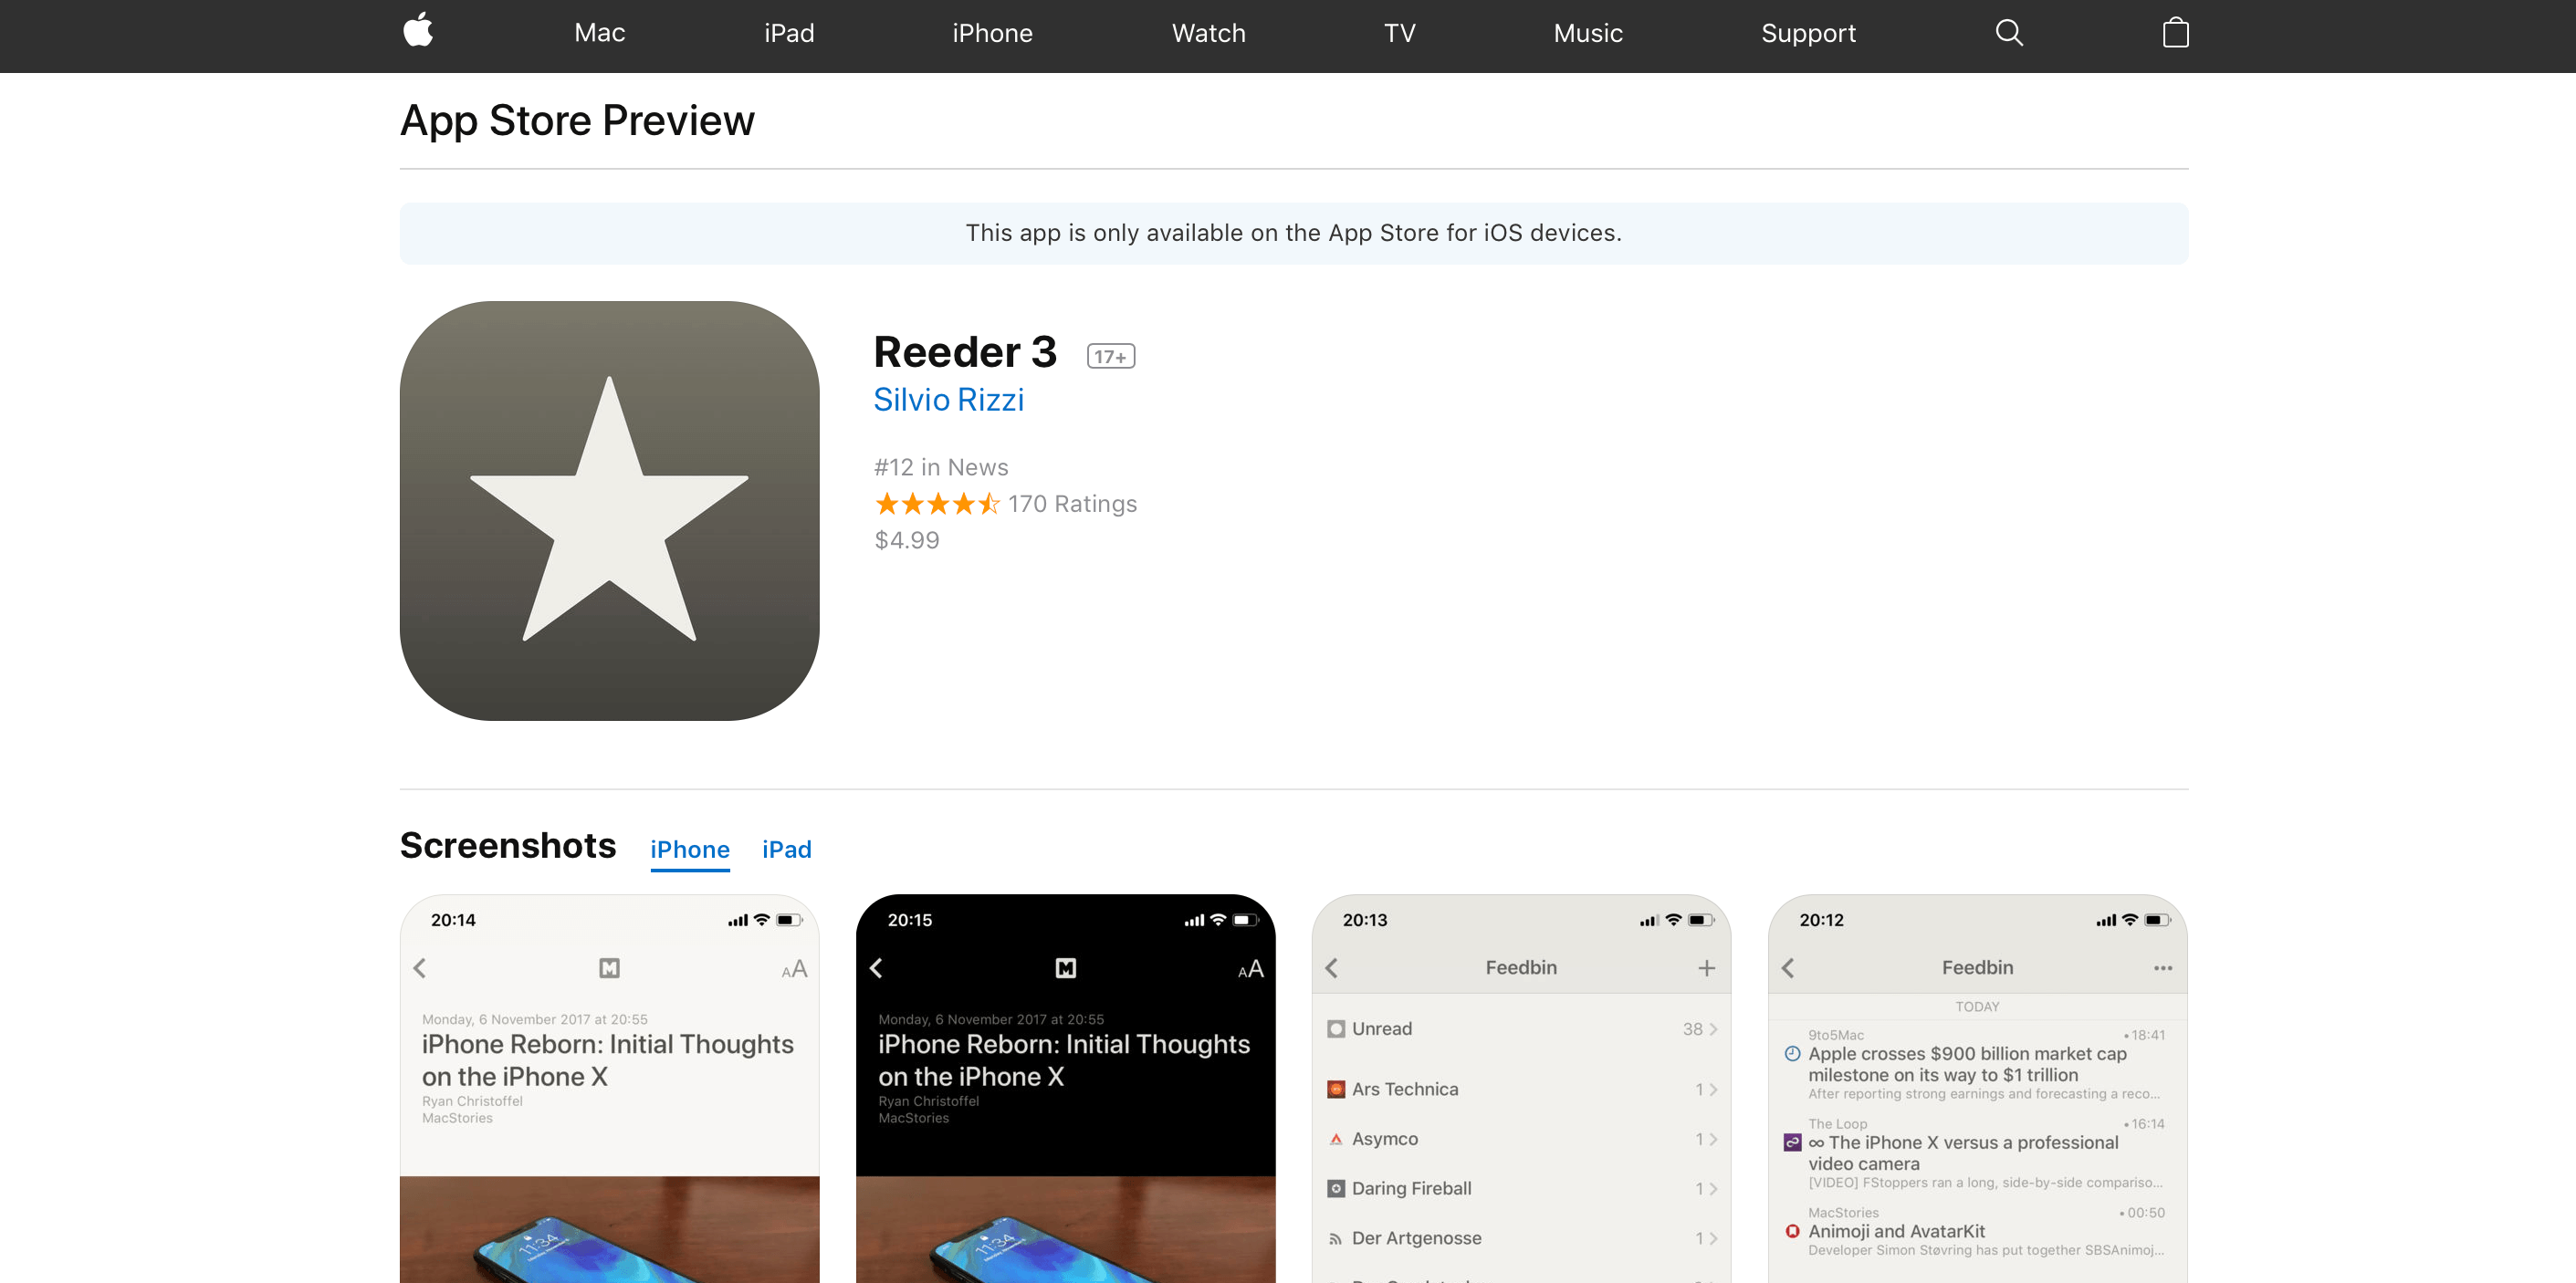 Mac And IOS App Store Web Preview Pages Get A Makeover